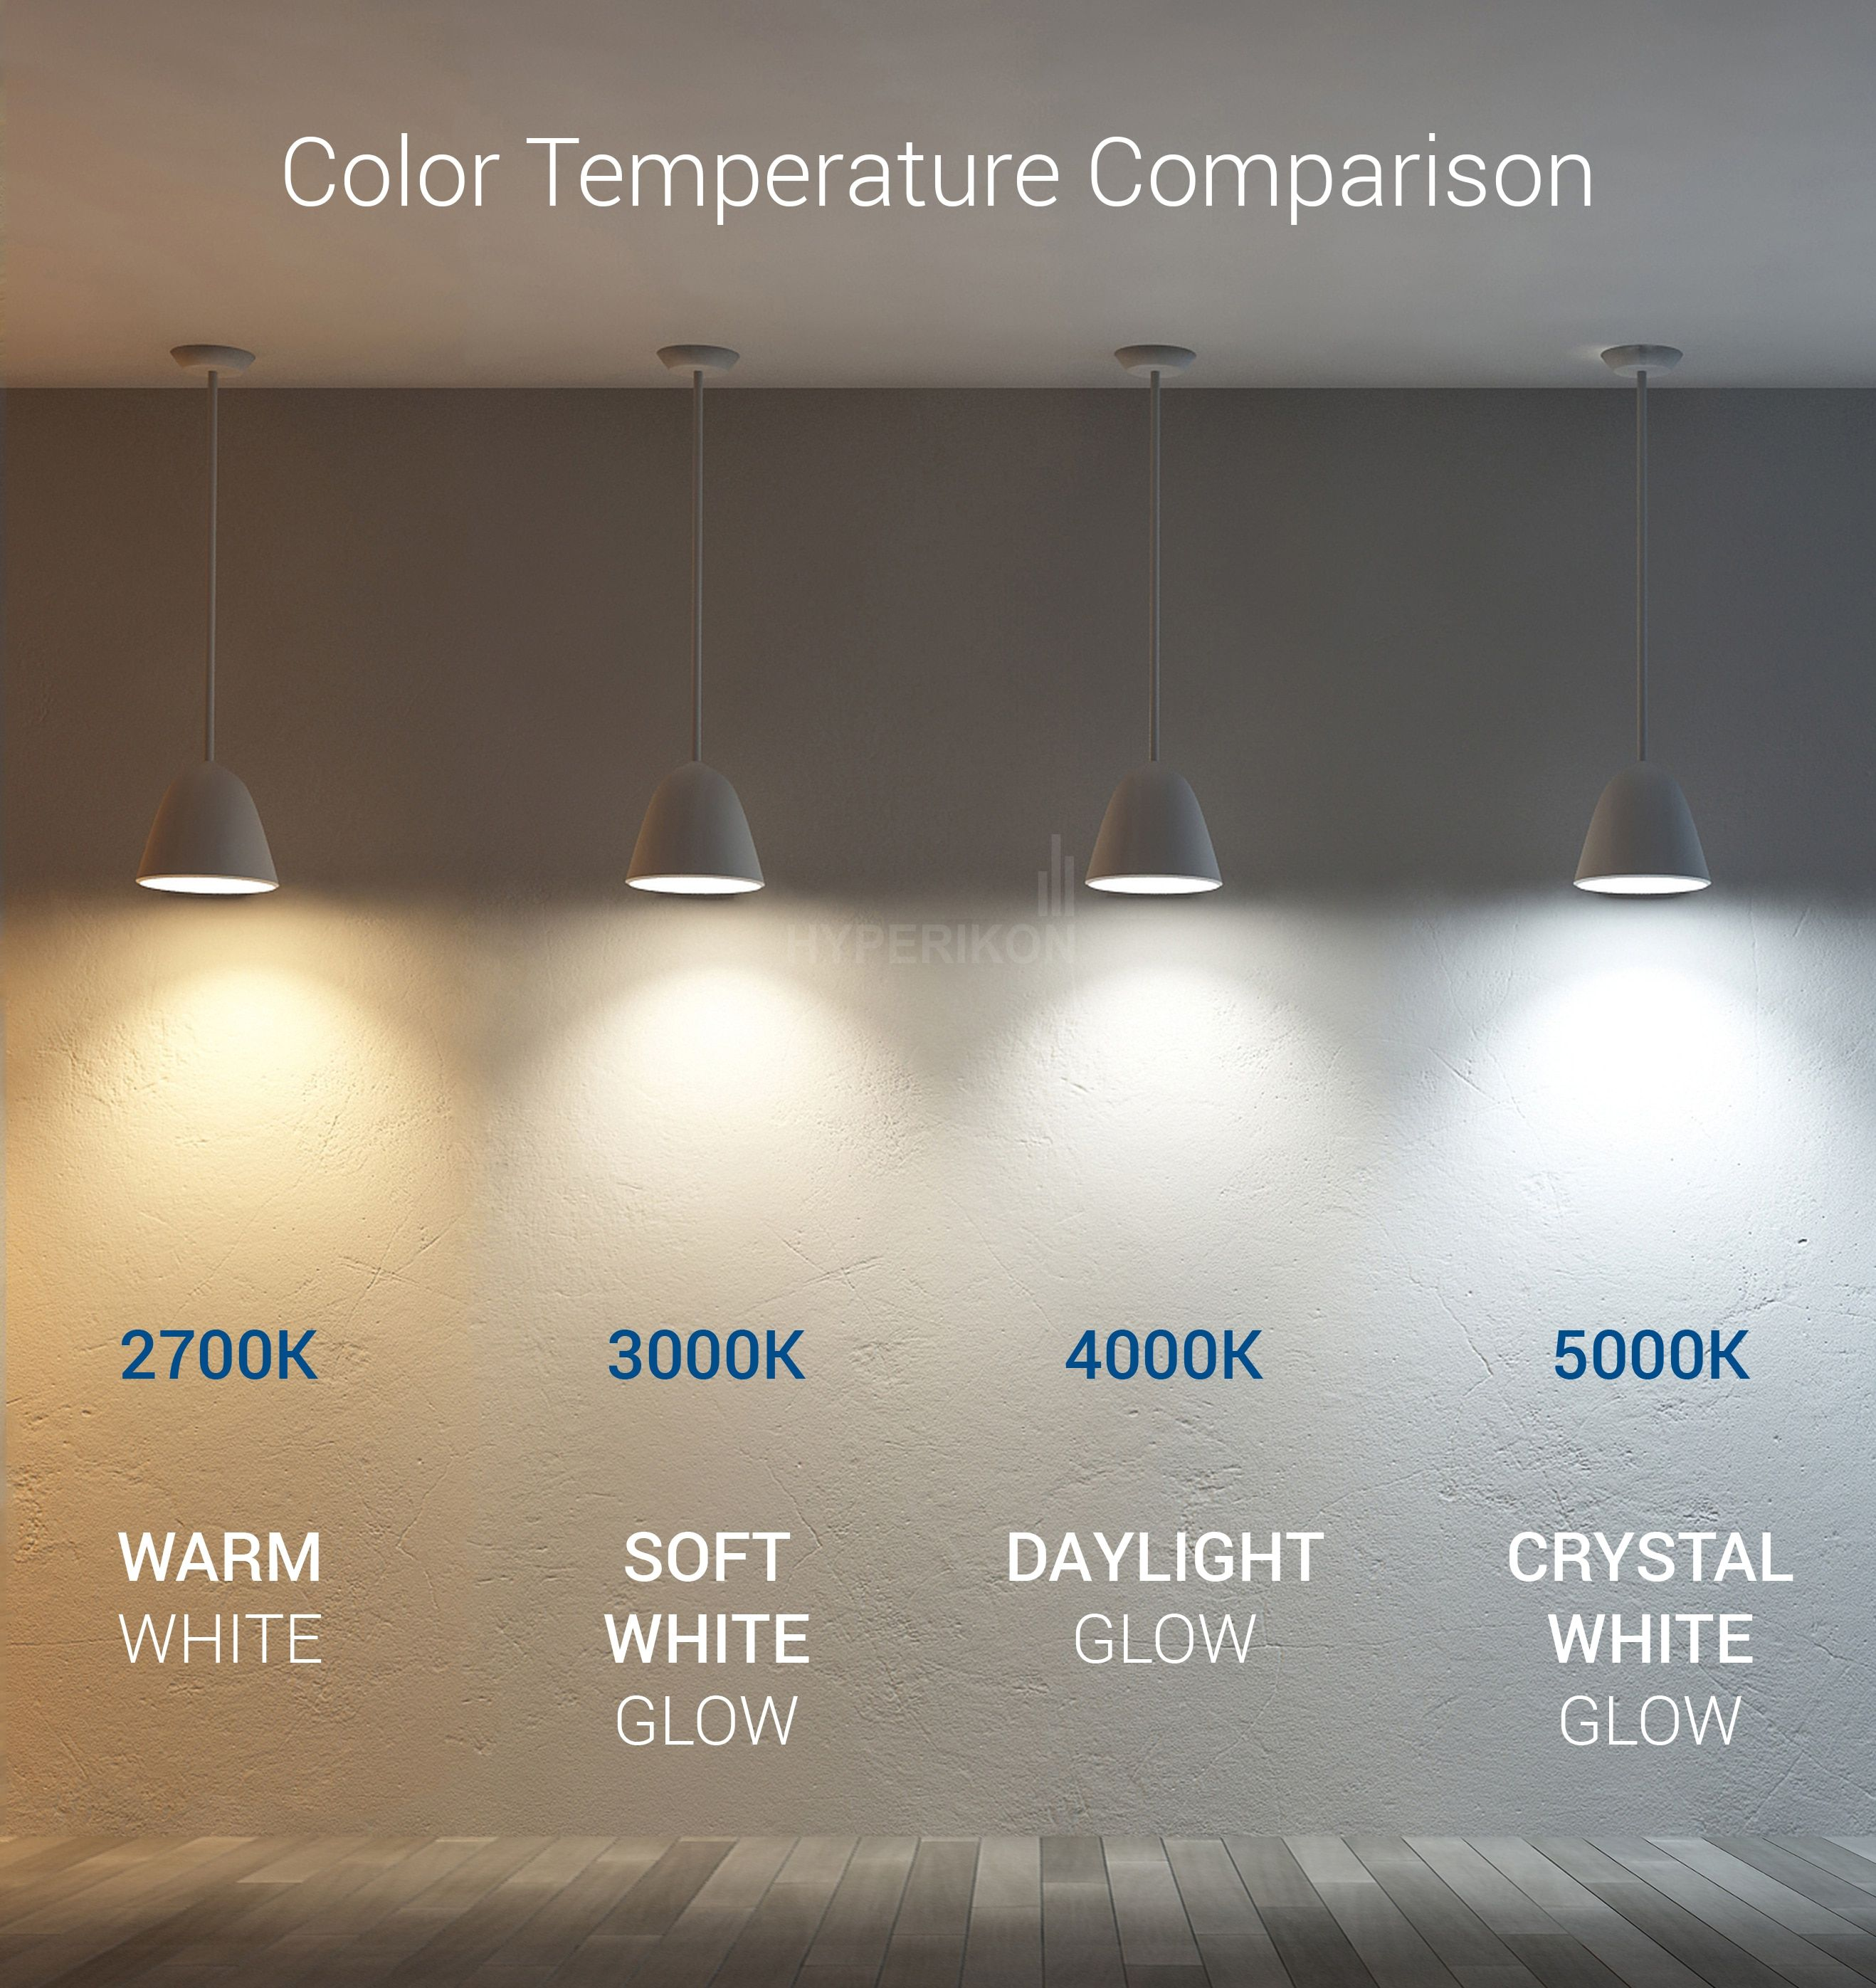 What Led Color Kelvin Temperature Should I Choose Lighting Design Interior Hidden Lighting Led Light Design